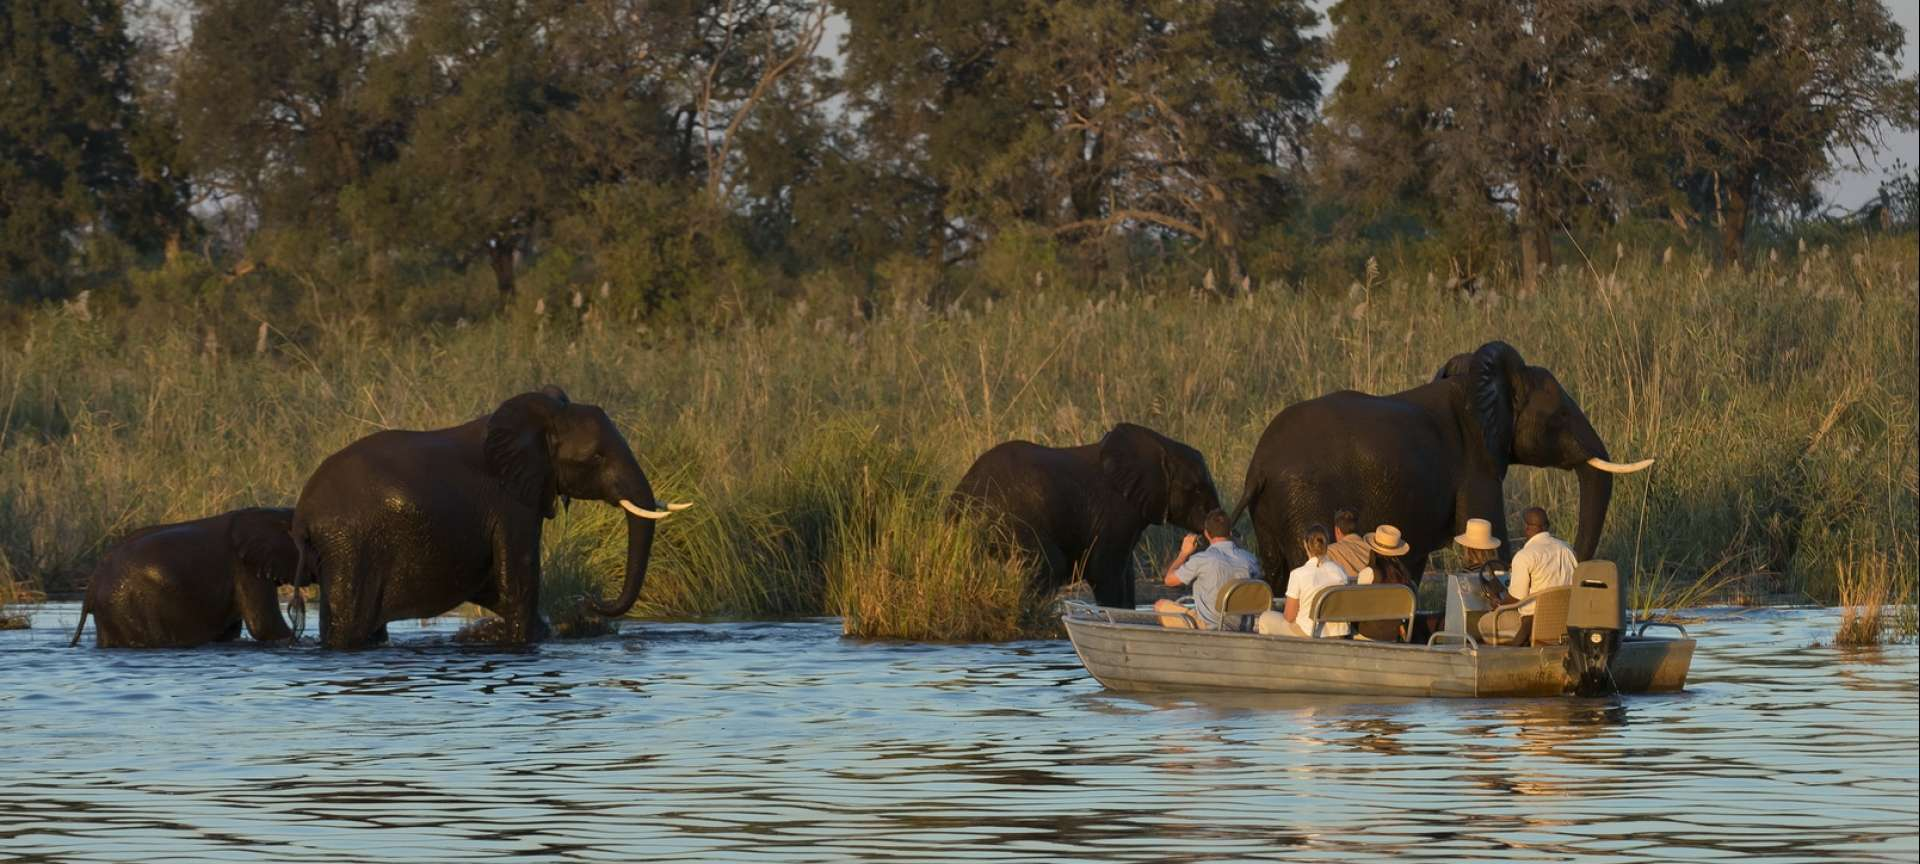 Elephant wading in the Zambezi River